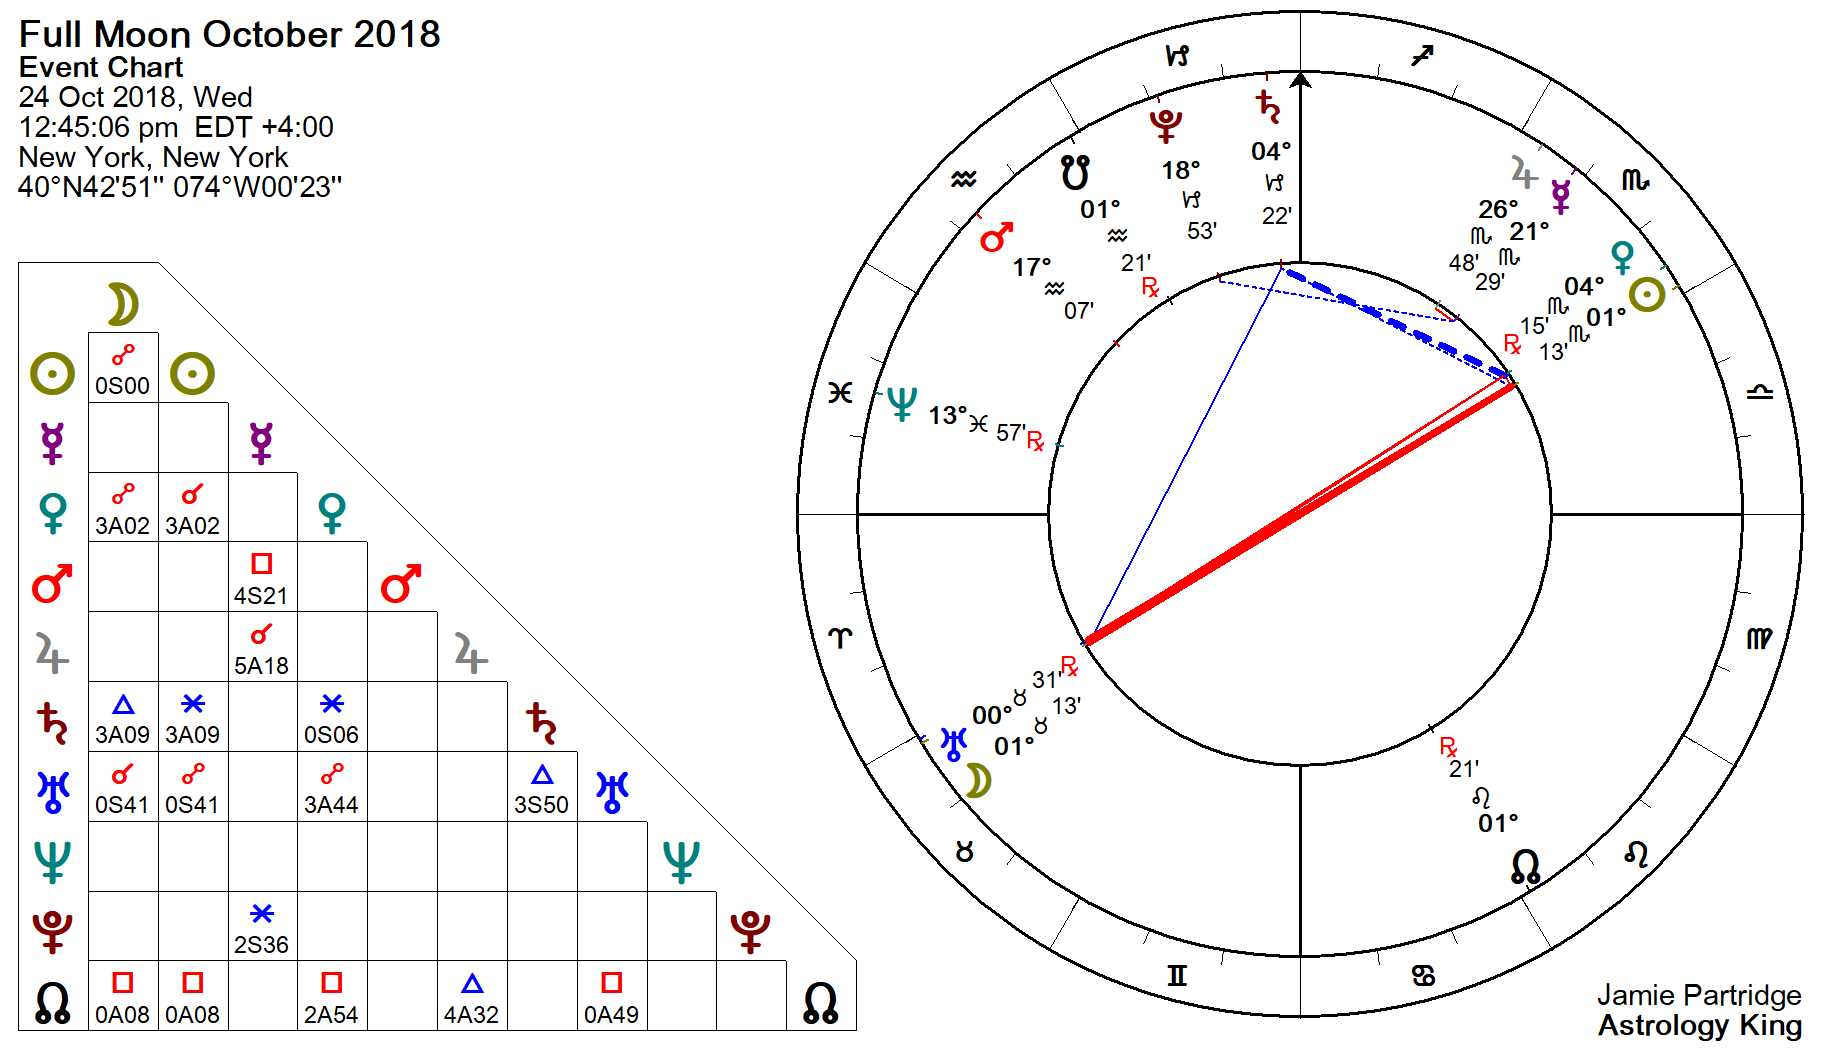 What's your moon phase?